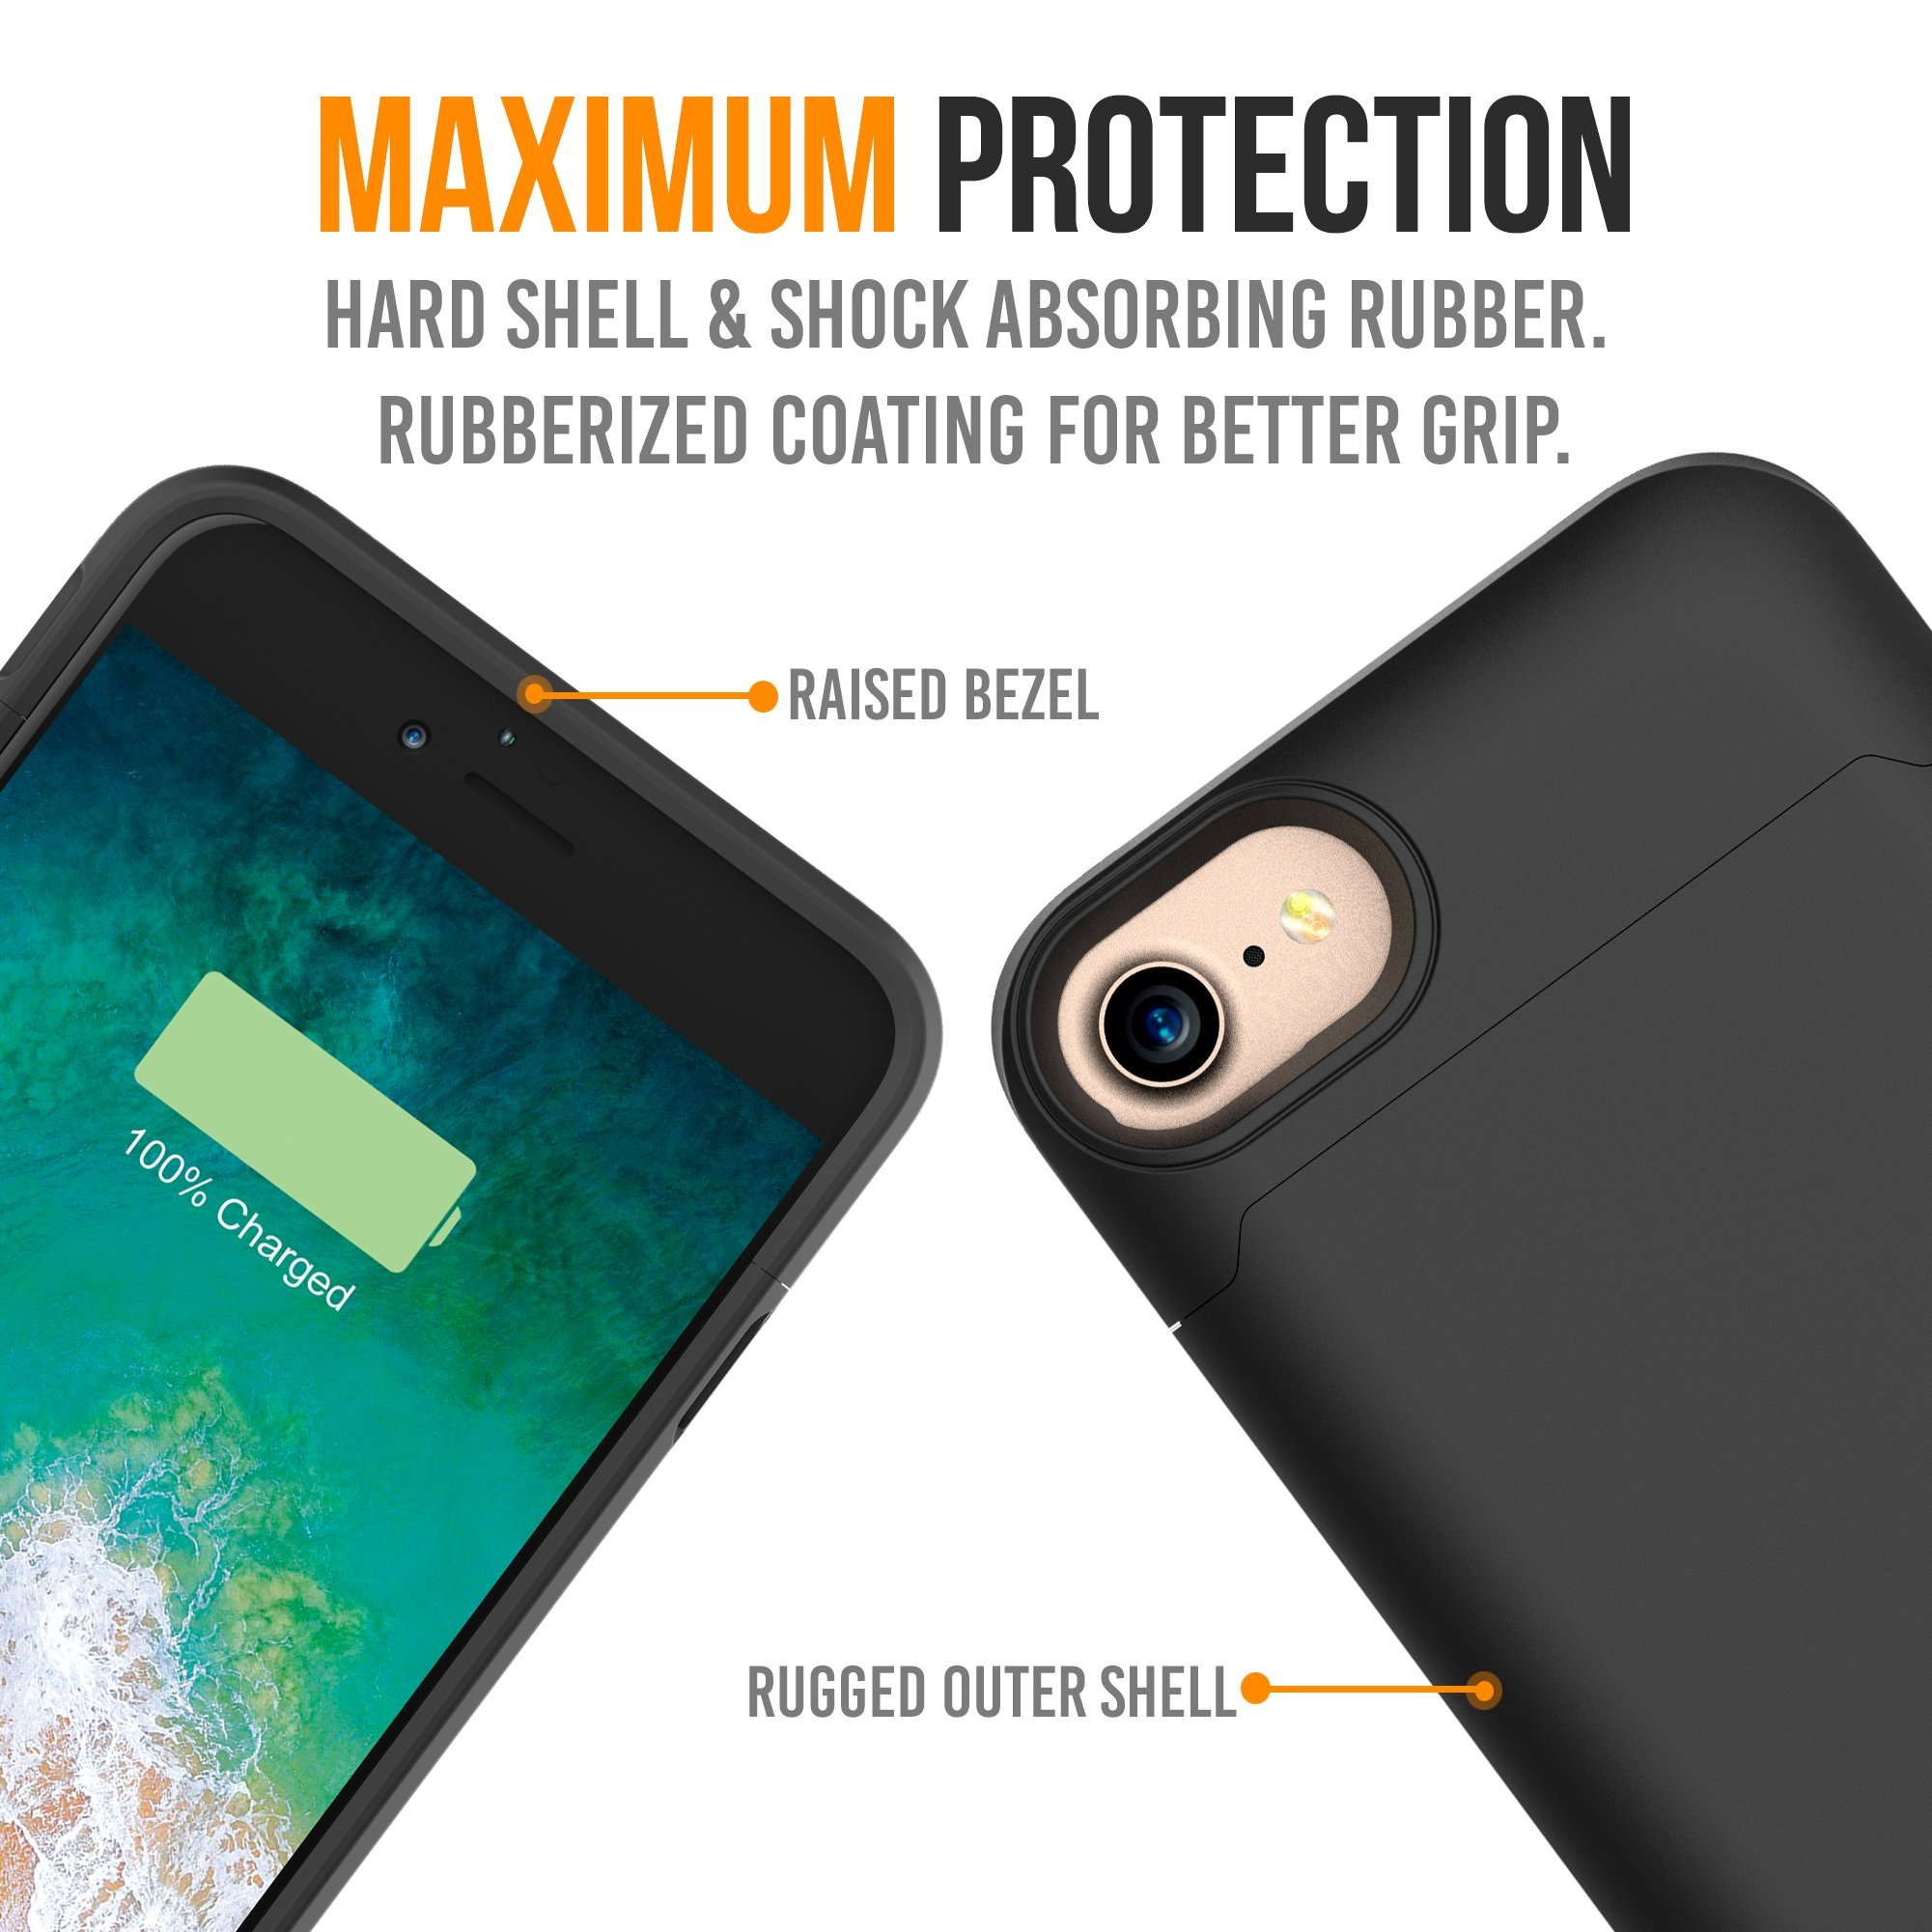 iPhone 7 Battery Case, Alpatronix BX180 4.7-inch 3200mAh Ultra Slim External Rechargeable Extended Protective Portable Charging Case & Charger Cover for iPhone7 [Apple Certified Chip] - Matte Black by Alpatronix (Image #2)